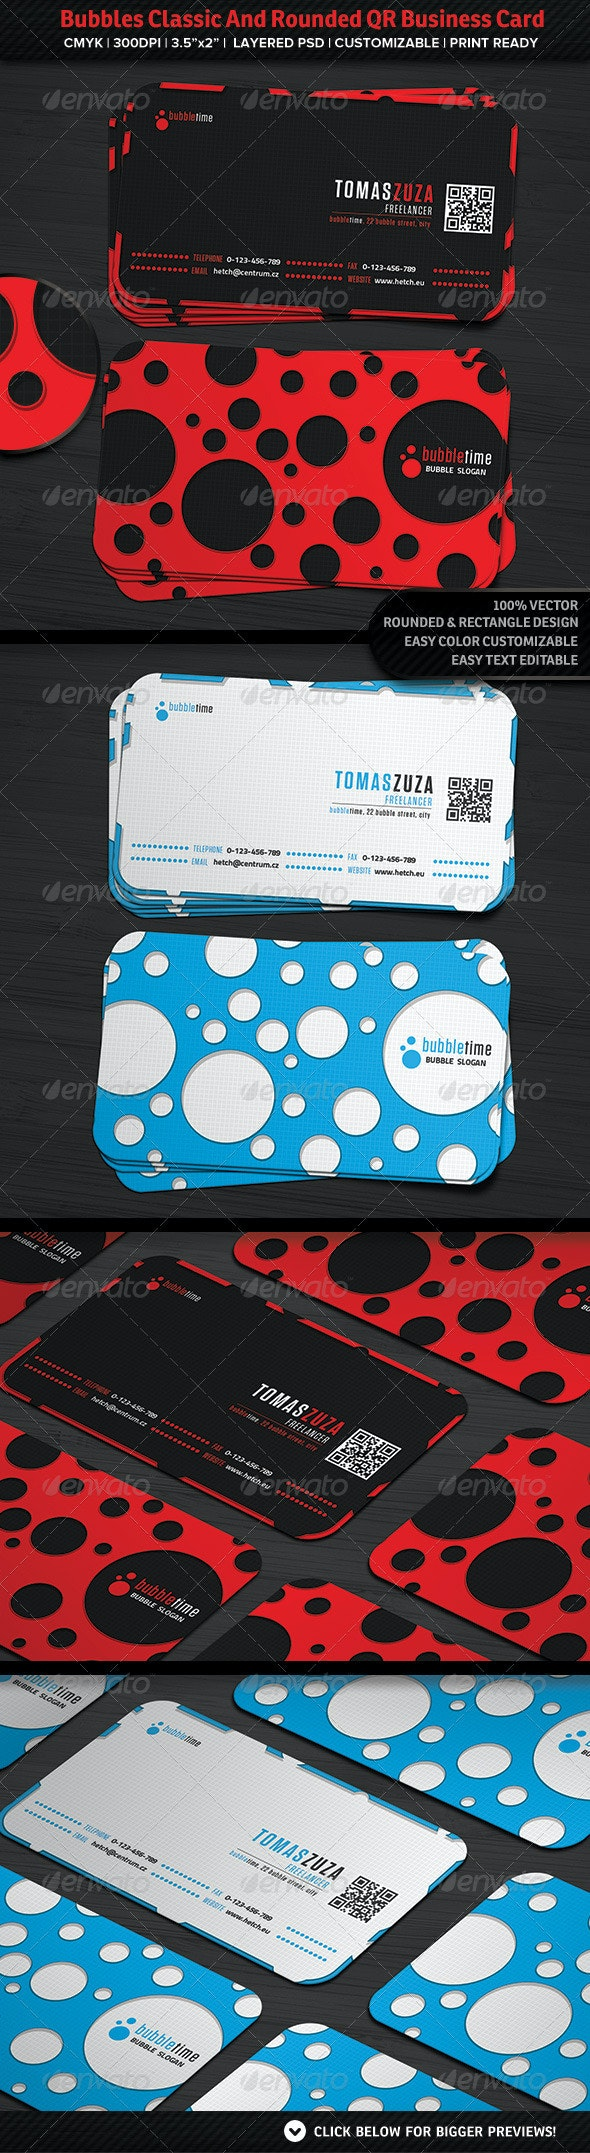 Bubbles Classic And Rounded QR Business Card - Corporate Business Cards